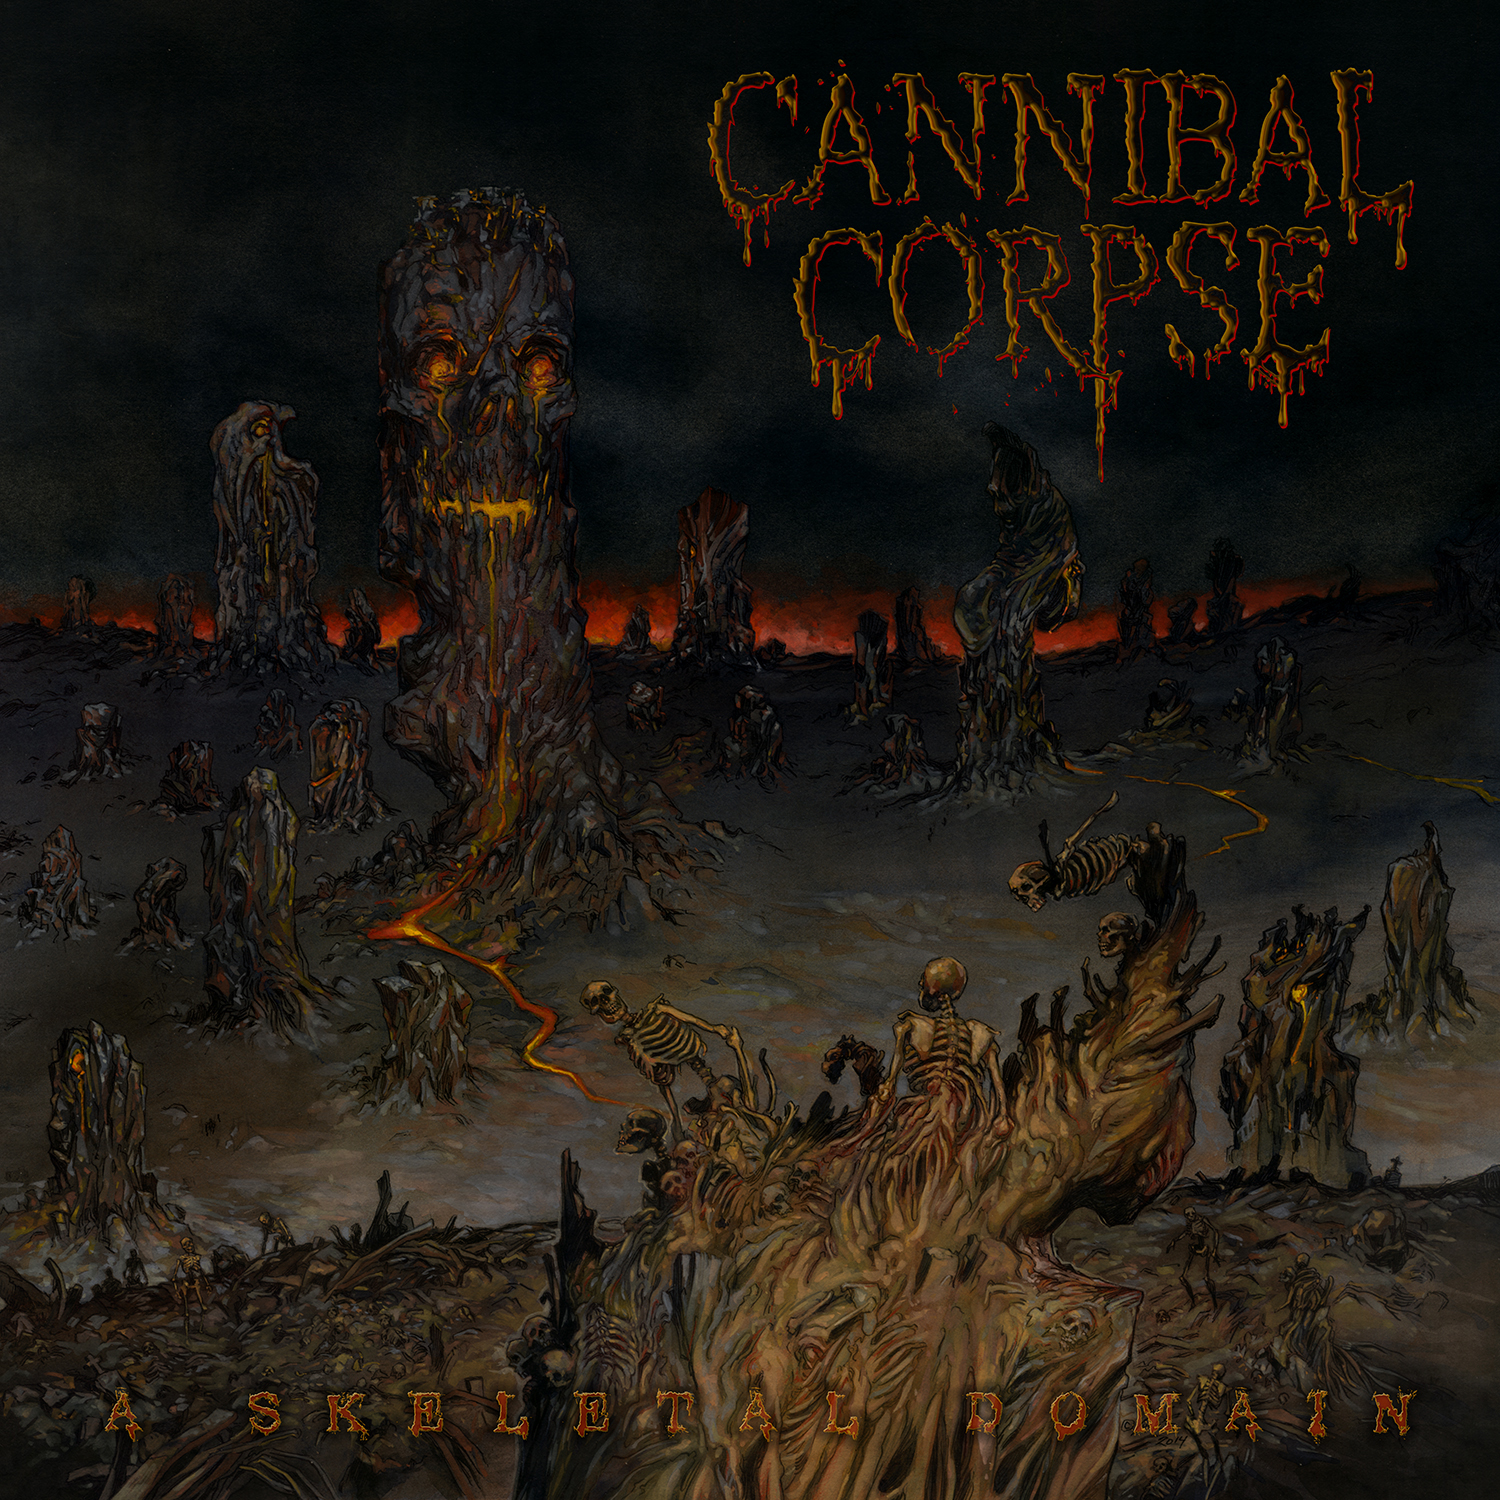 cannibal corspe - a skeletal domain